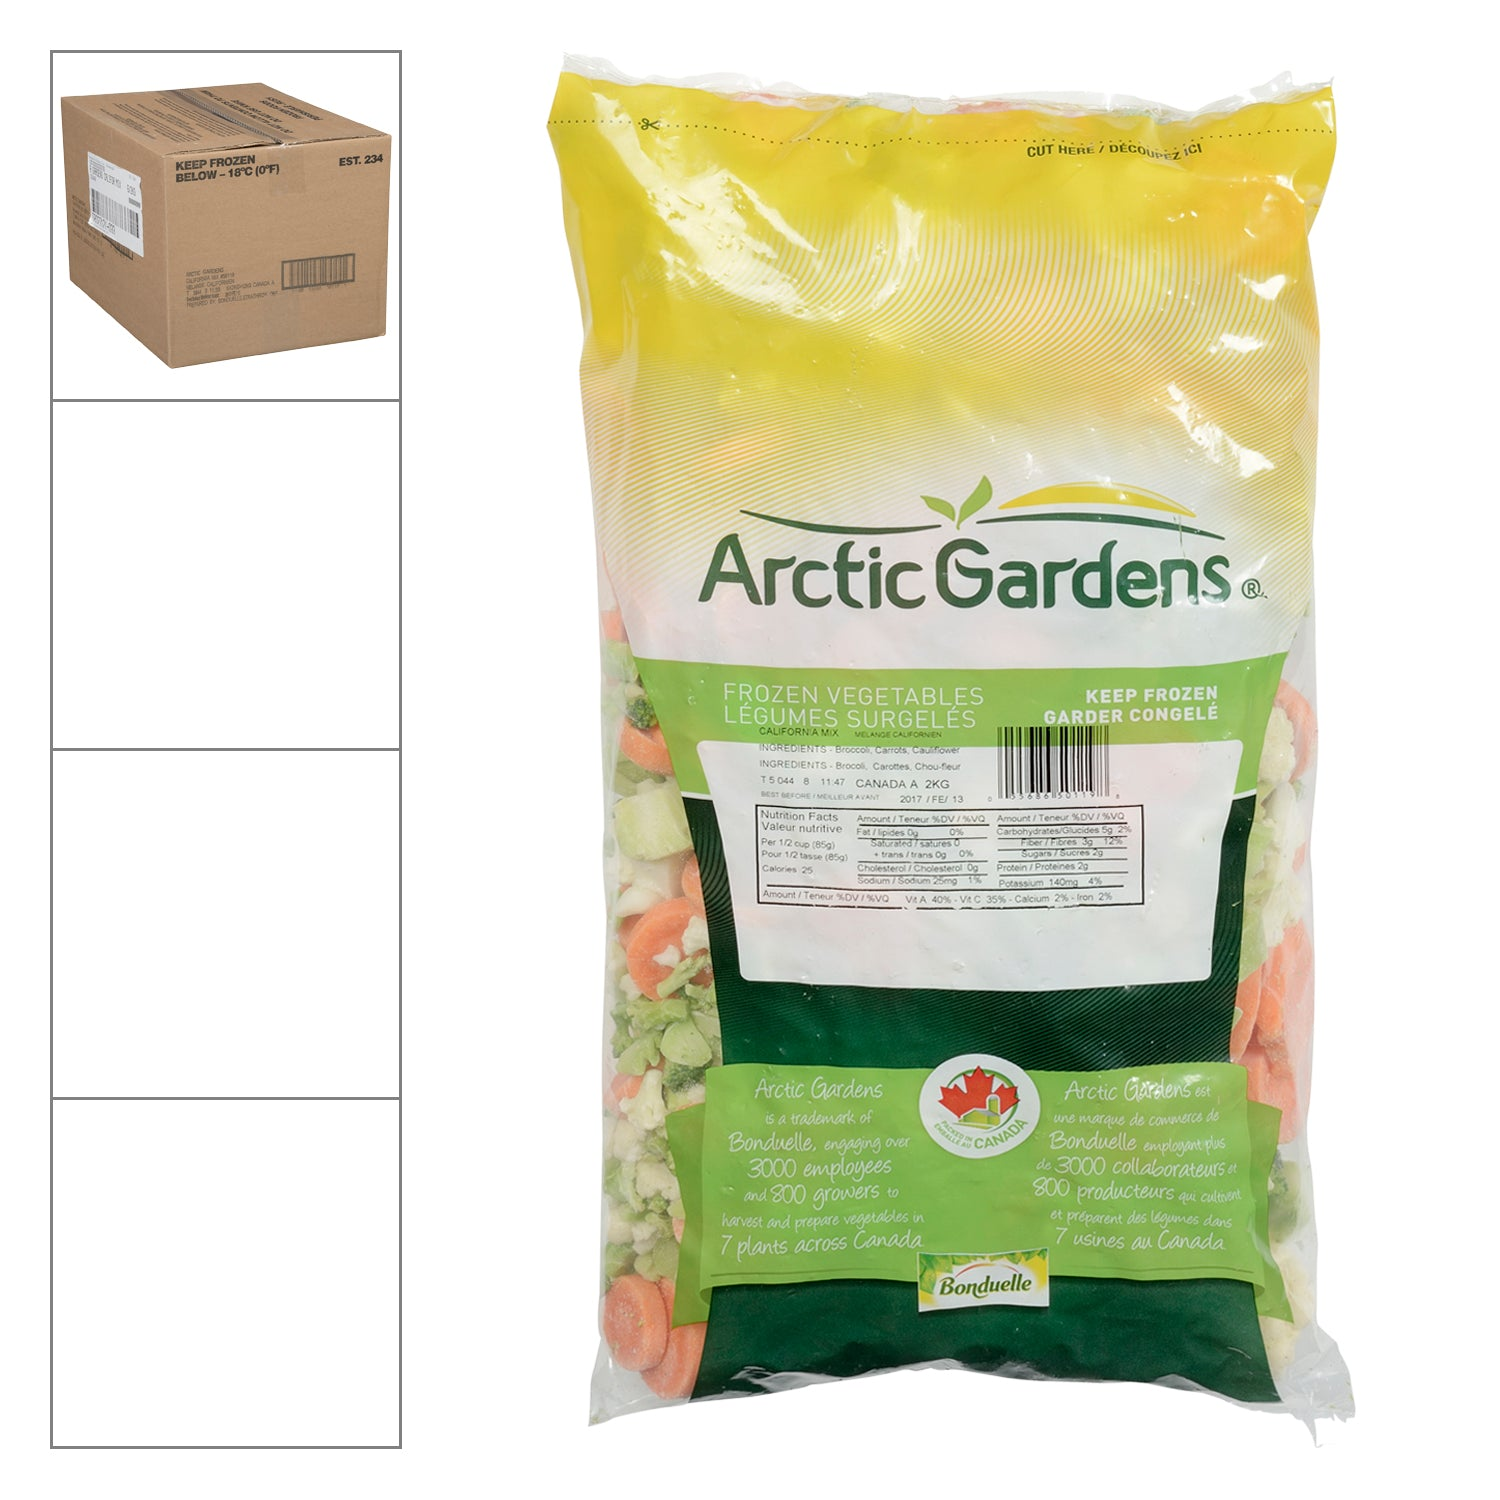 Arctic Garden Frozen California Blend Vegetable Mix (Cauliflower/Broccoli/Carrot) 2 kg - 6 Pack [$4.08/kg]